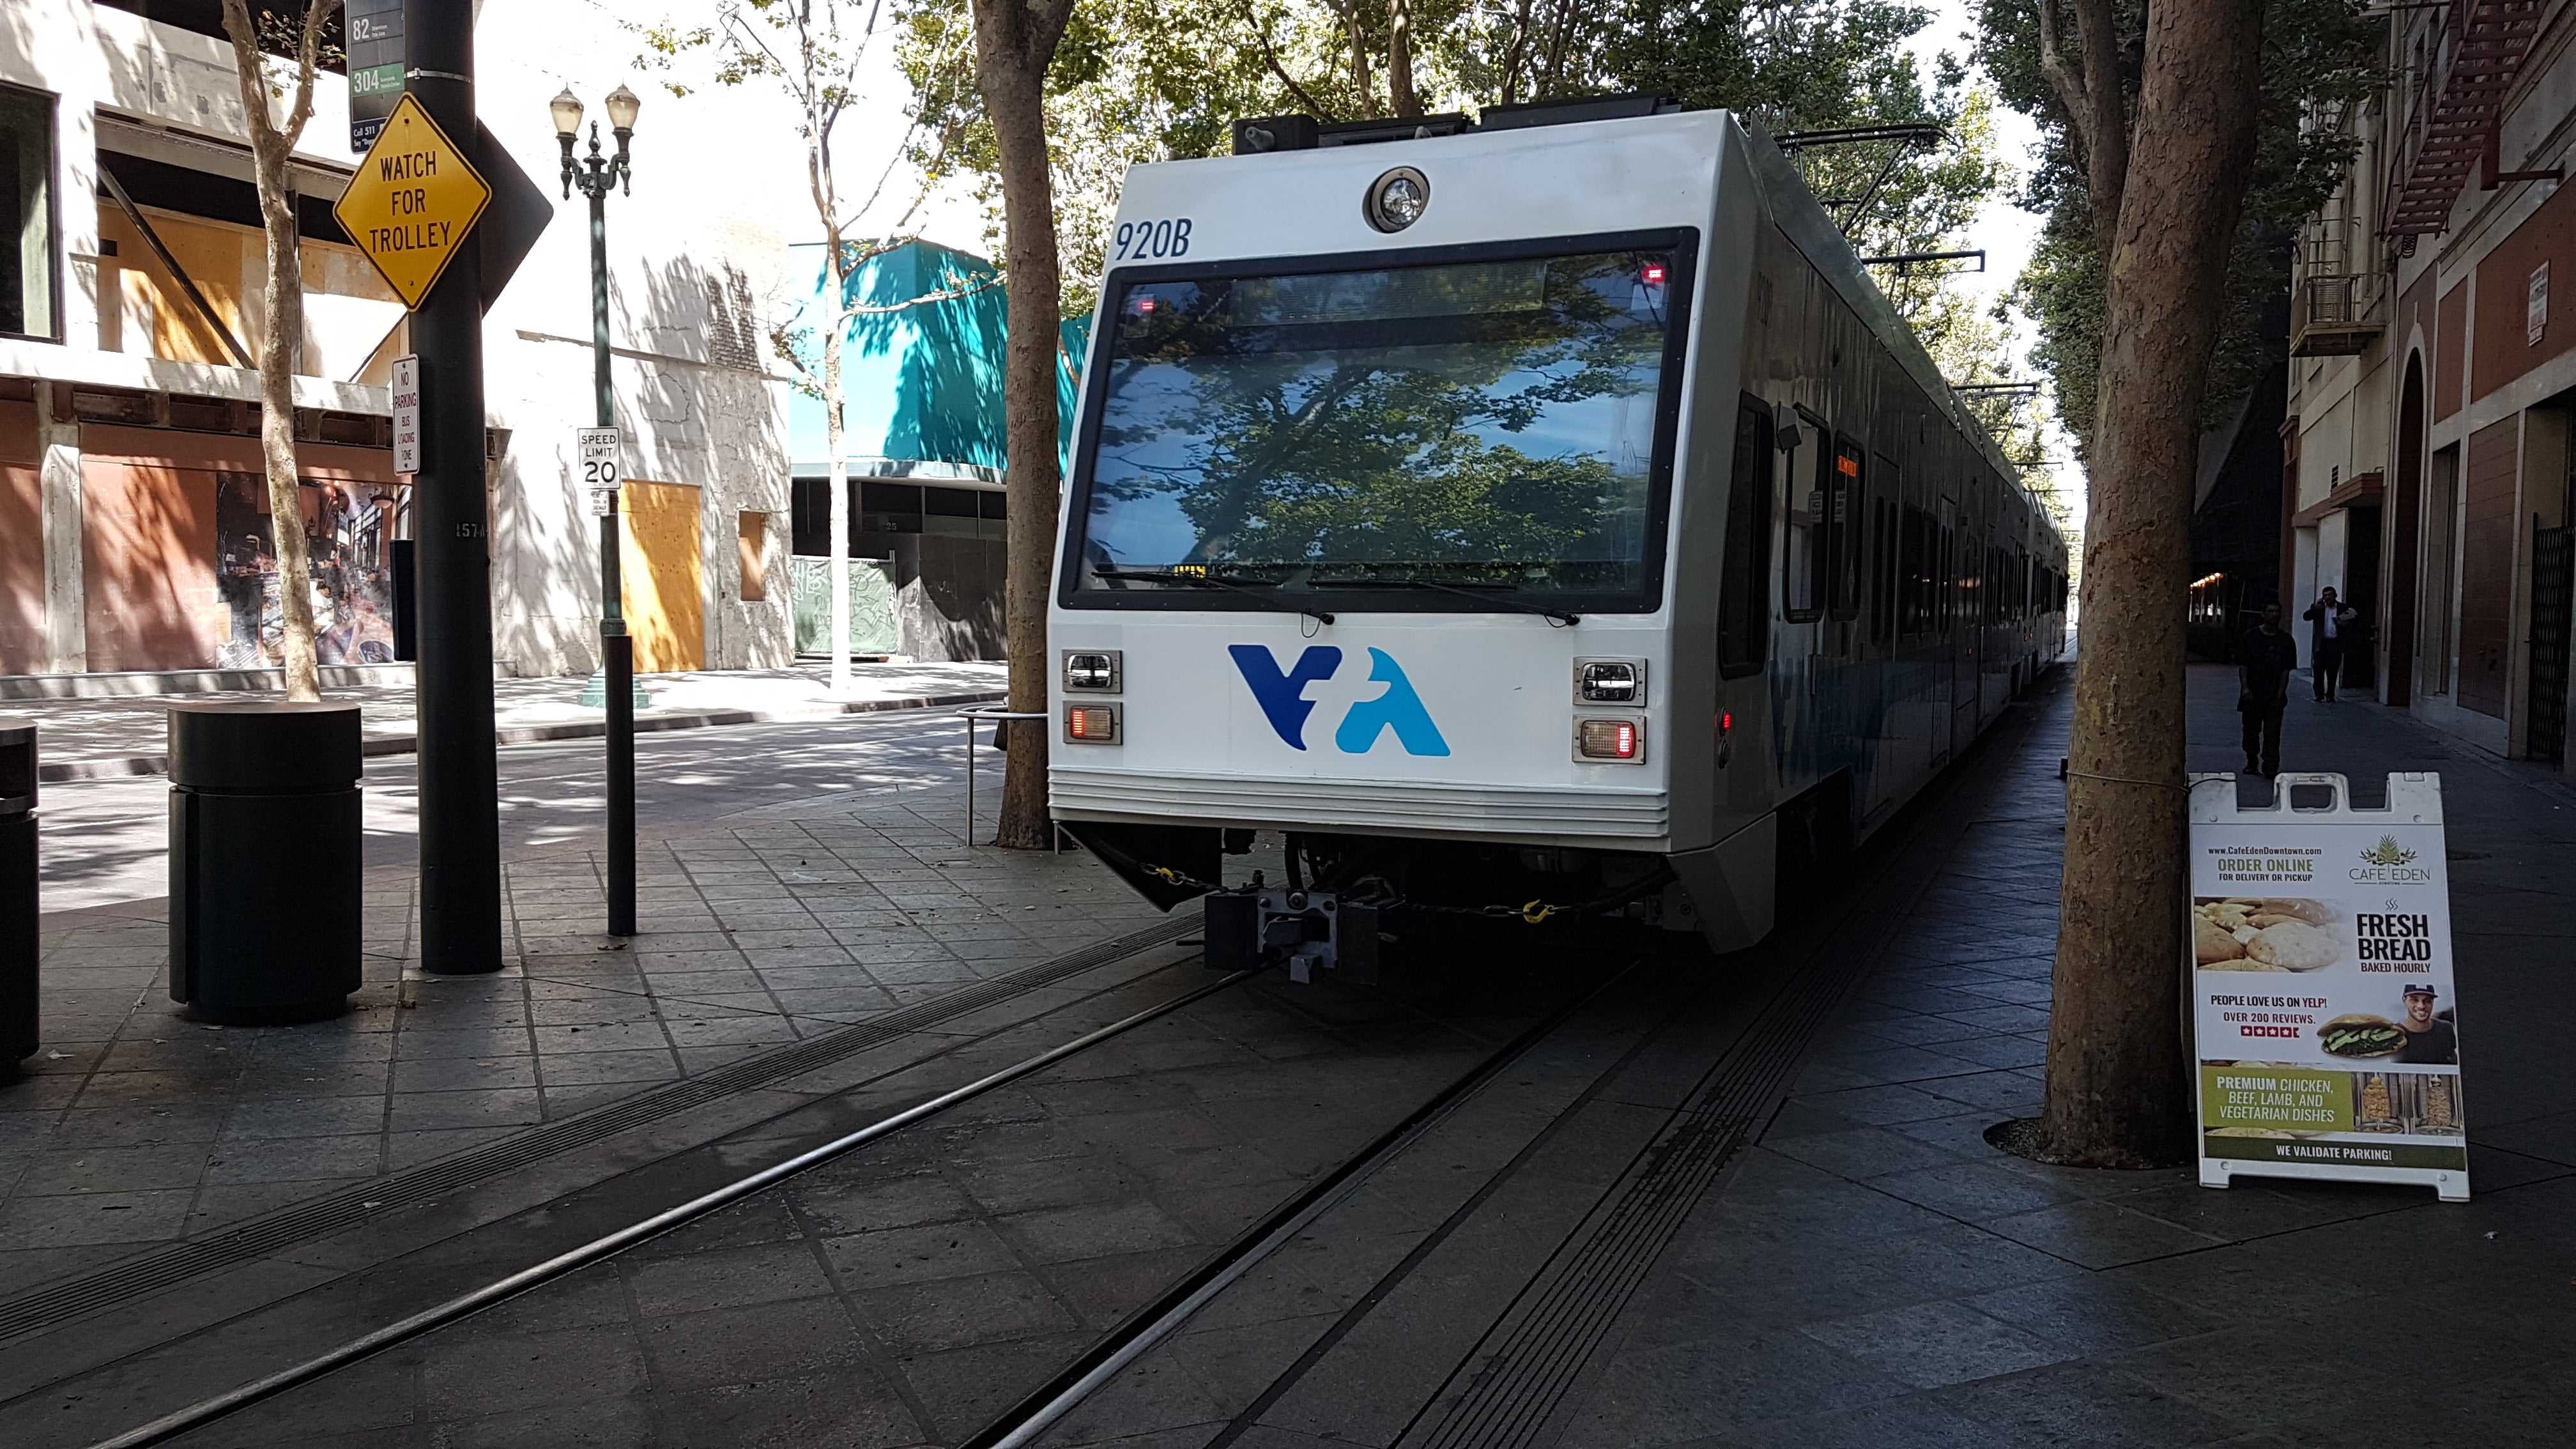 Santa Clara low-floor articulated tram 920 on regional line 902 on the street N 1st Street (2018).